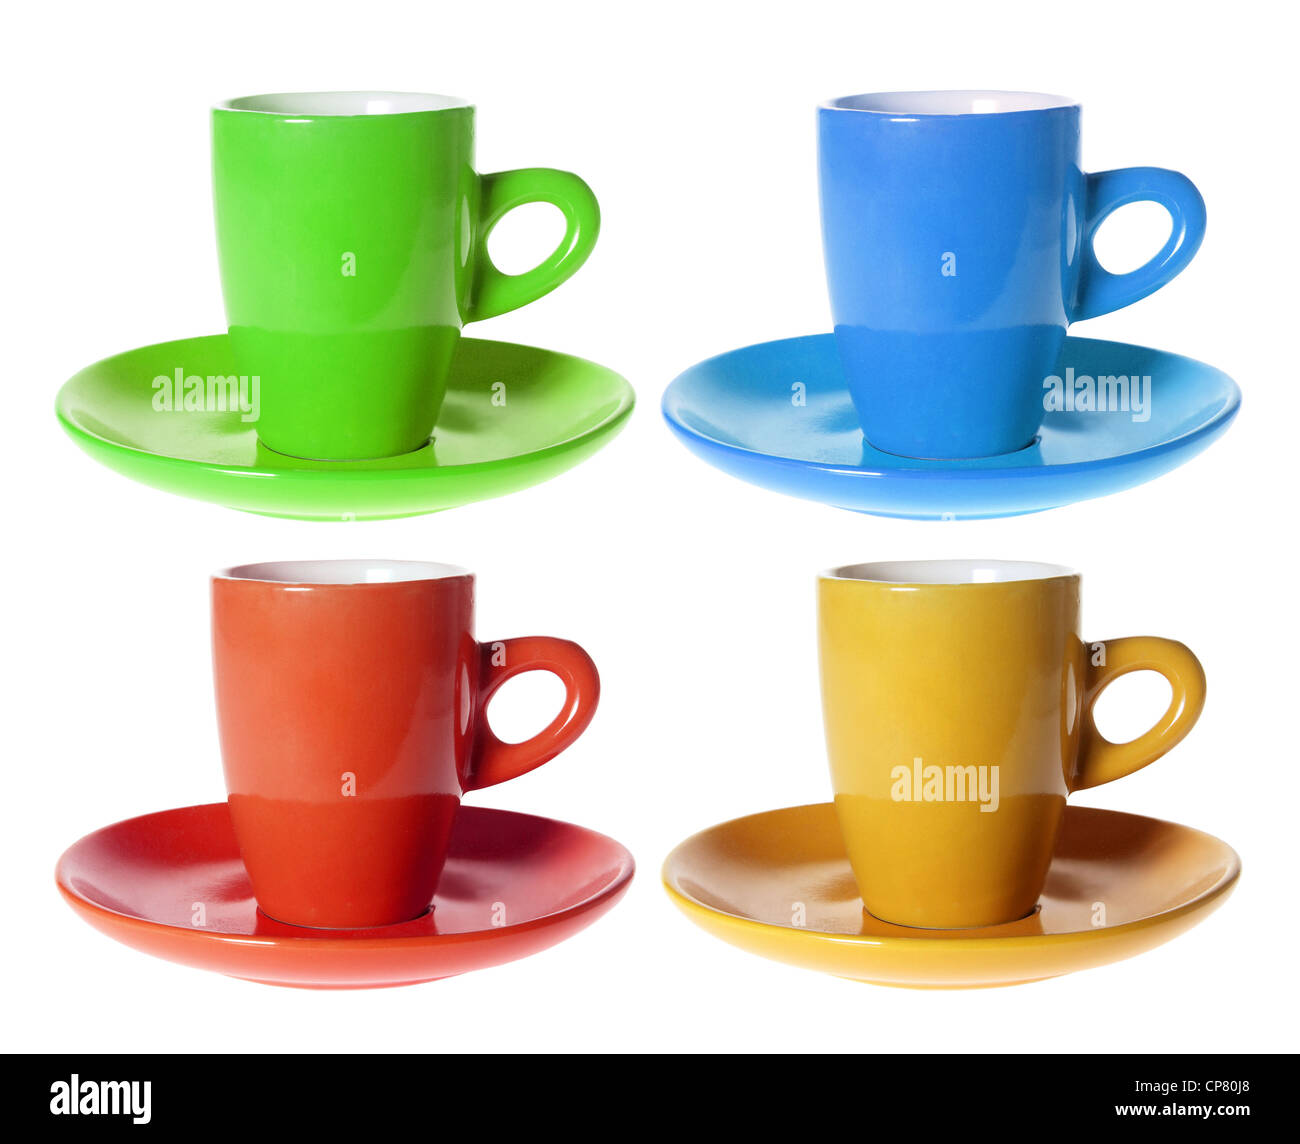 Color Cups and Saucers - Stock Image